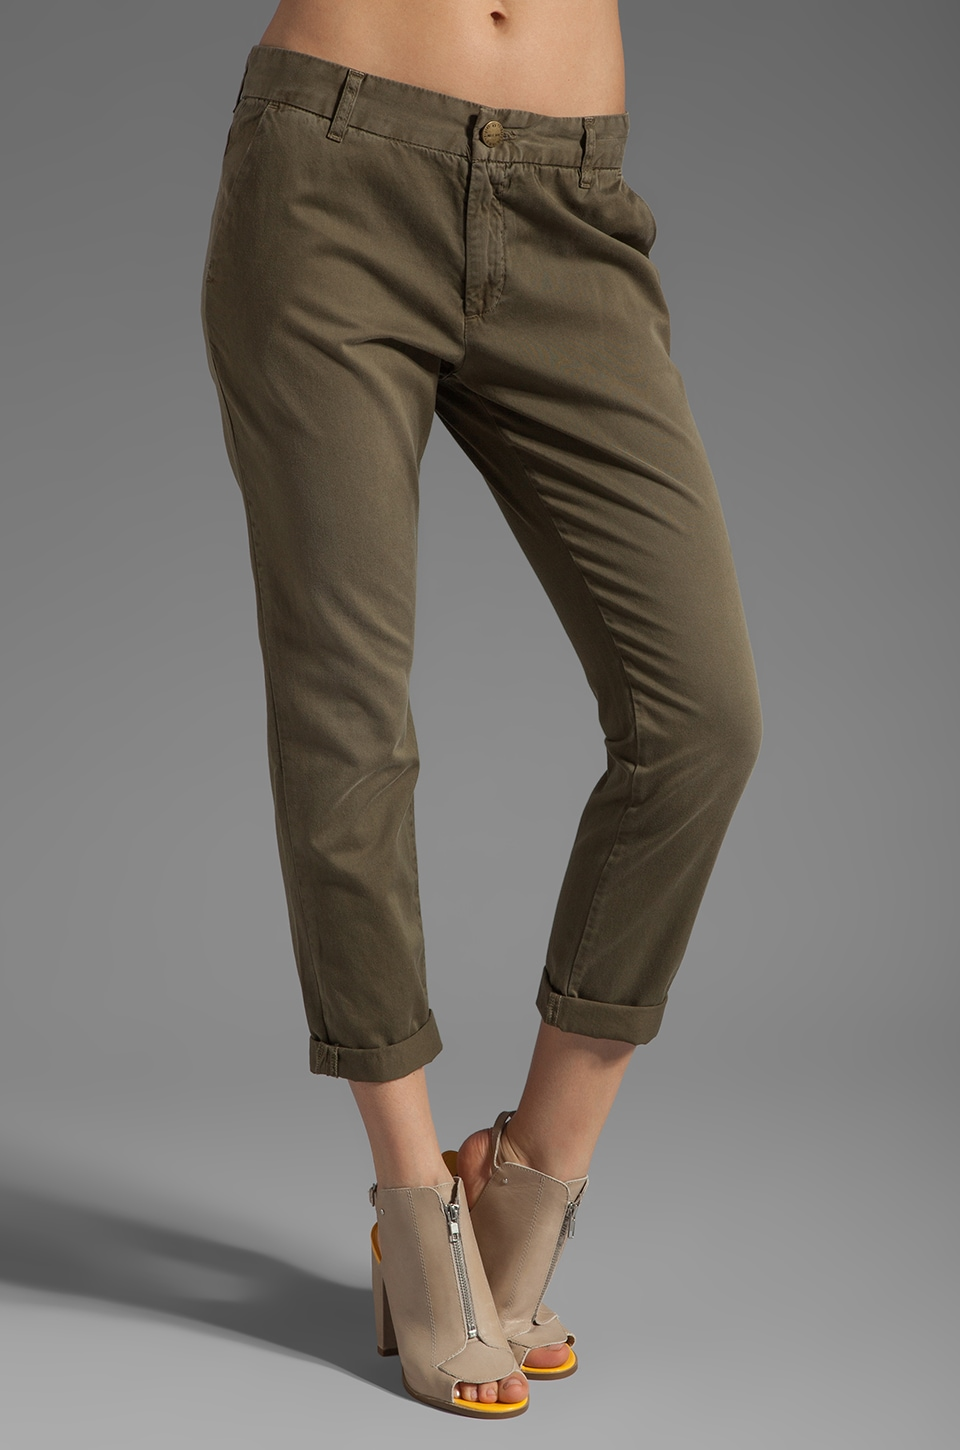 Current/Elliott The Buddy Trouser in Vintage Army